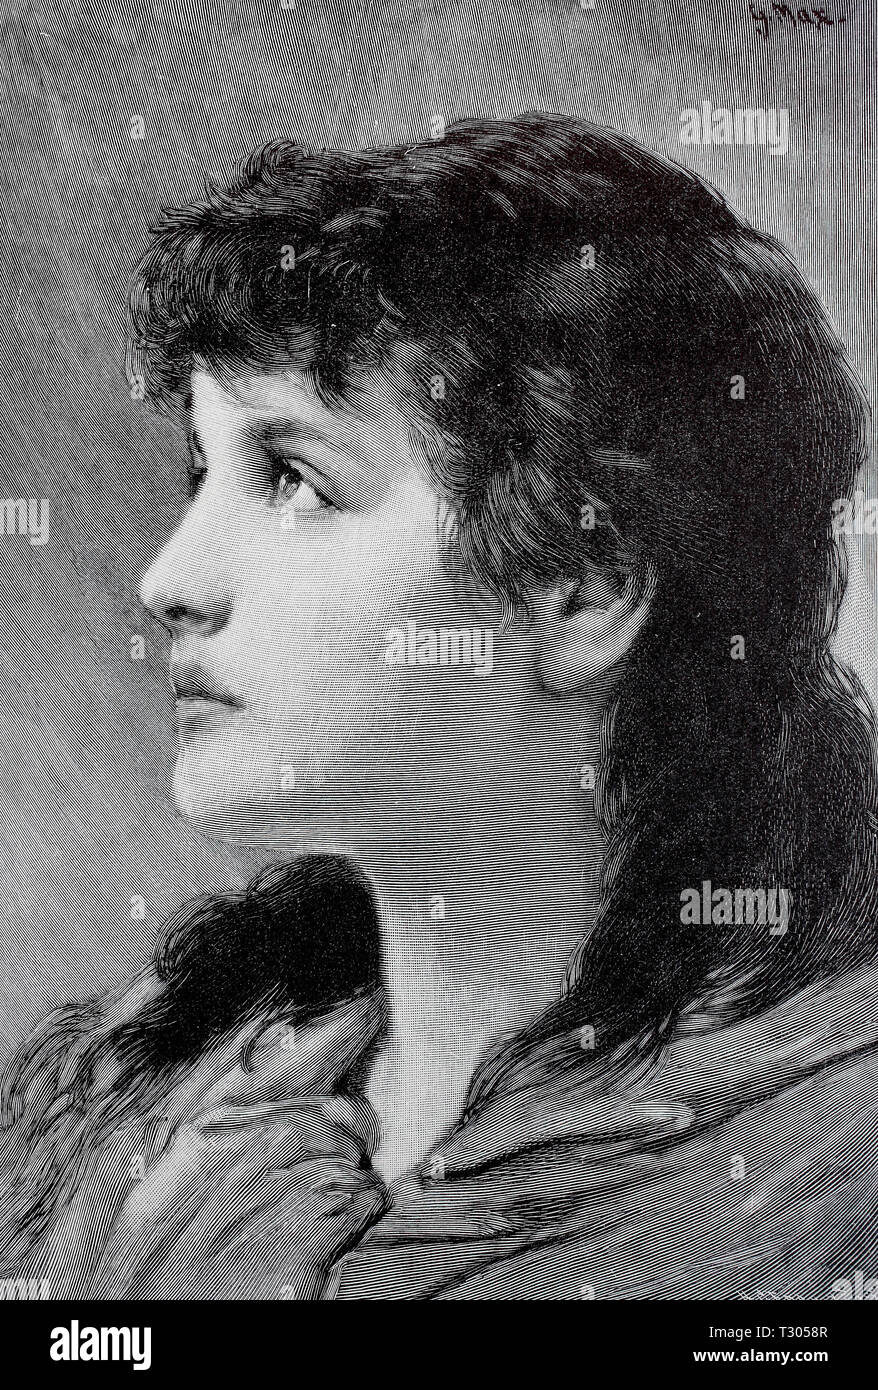 Digital improved reproduction, Young dark-haired woman in the profile with longing look, Junge dunkelhaarige Frau im Profil mit sehnsüchtigem Blick, from an original print from the 19th century Stock Photo